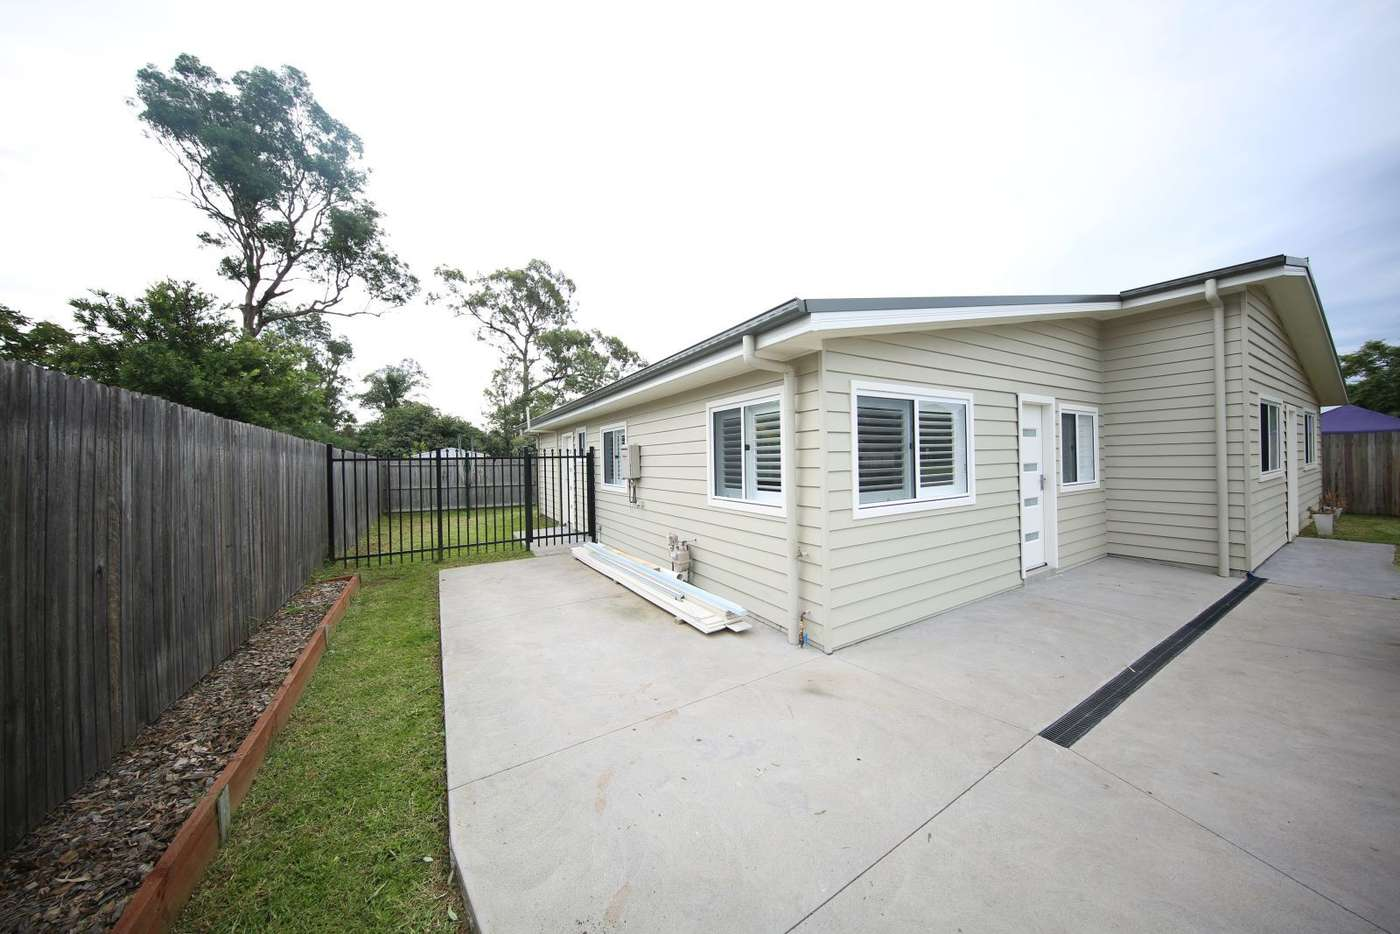 Main view of Homely villa listing, 2/ 13 Milne St, Tahmoor NSW 2573